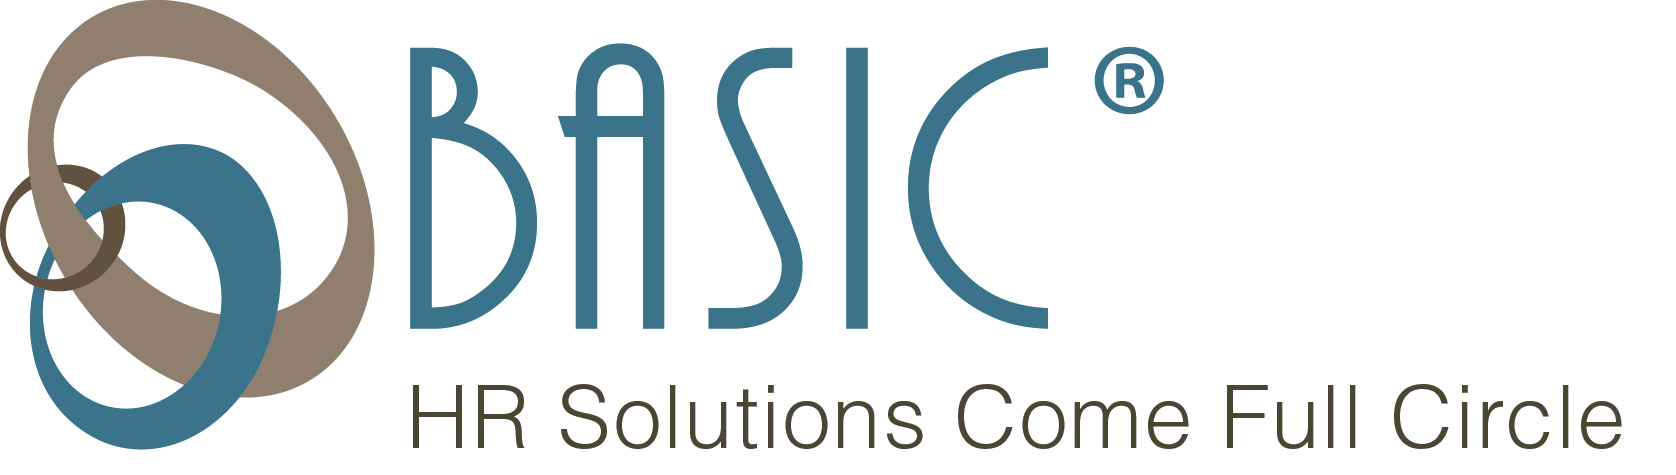 BASIC, is a technology driven HR Compliance Company focused on delivering administrative and technology solutions to assist Human Resource Departments nationwide. Their expertise allows employers to control costs, manage risks and improve staff focus and effectiveness. BASIC's suite of solutions offered independently or as a platform of services, paired with their experienced staff, ensures consistency and flexibility.